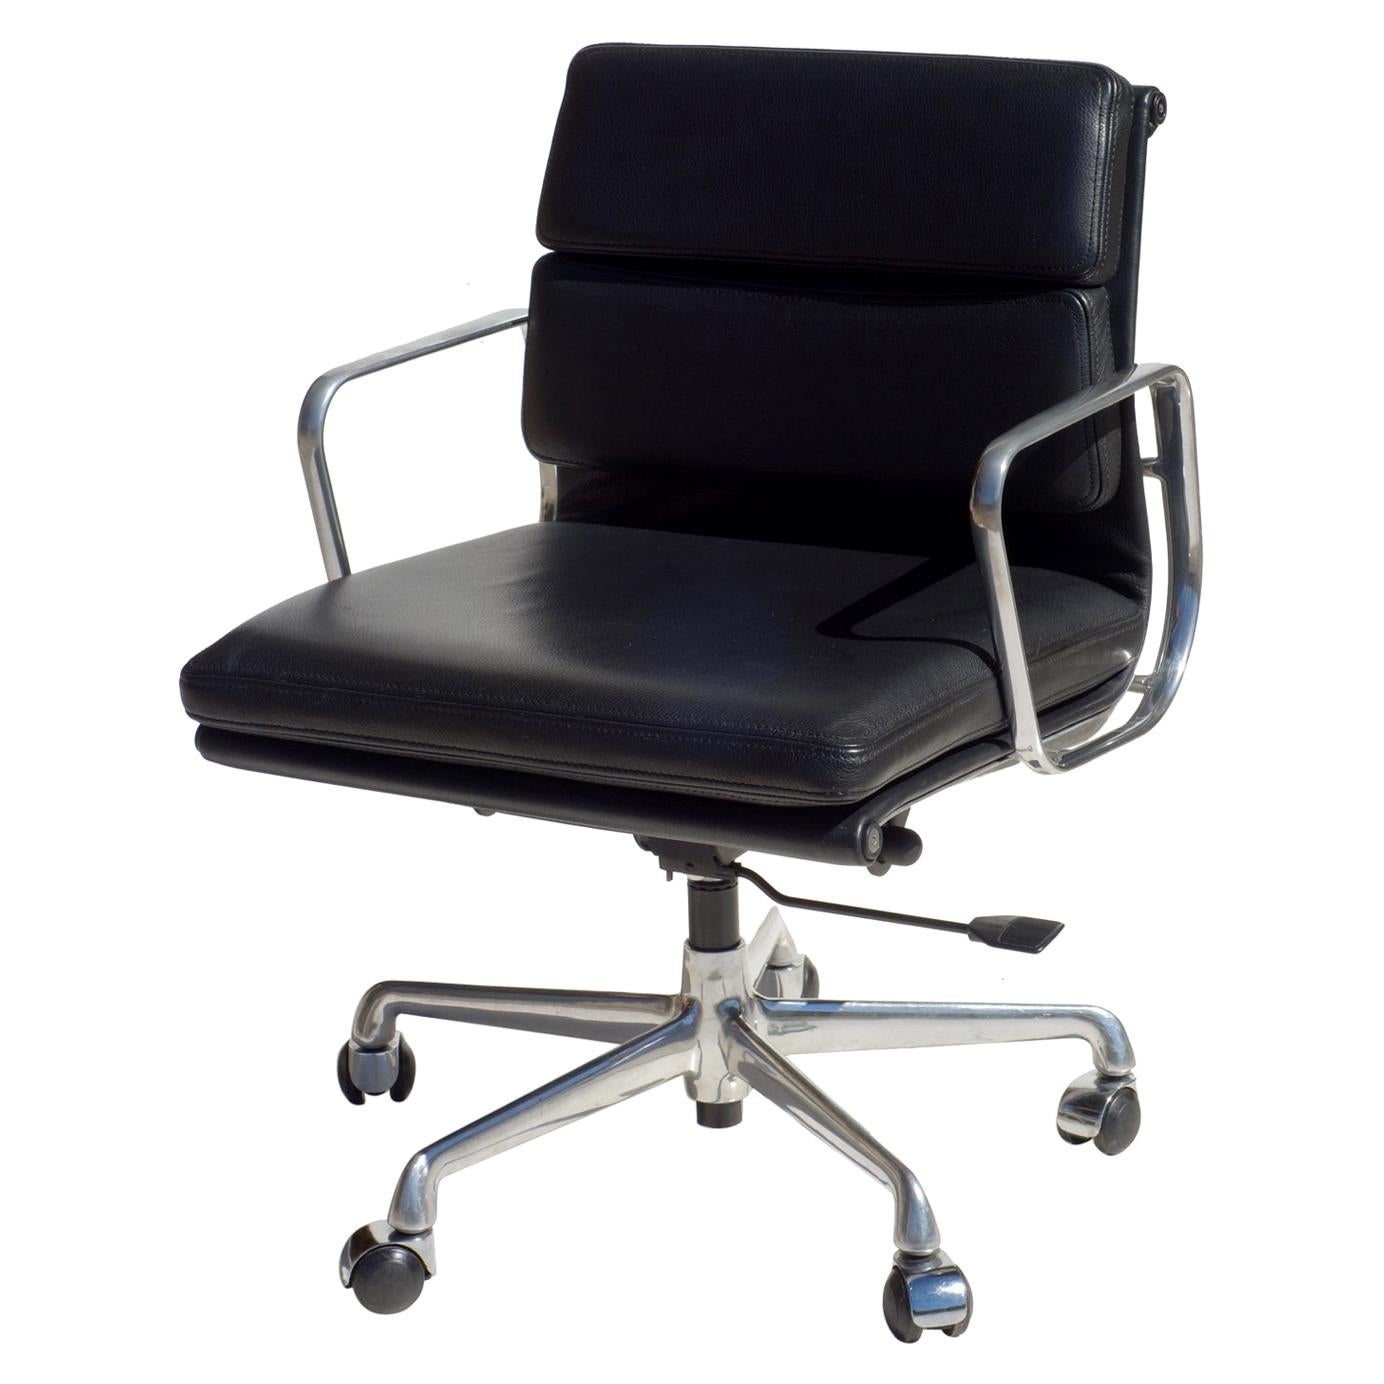 EA 217 Charles Eames by ICF Soft Pad Black Leather Desk Chair